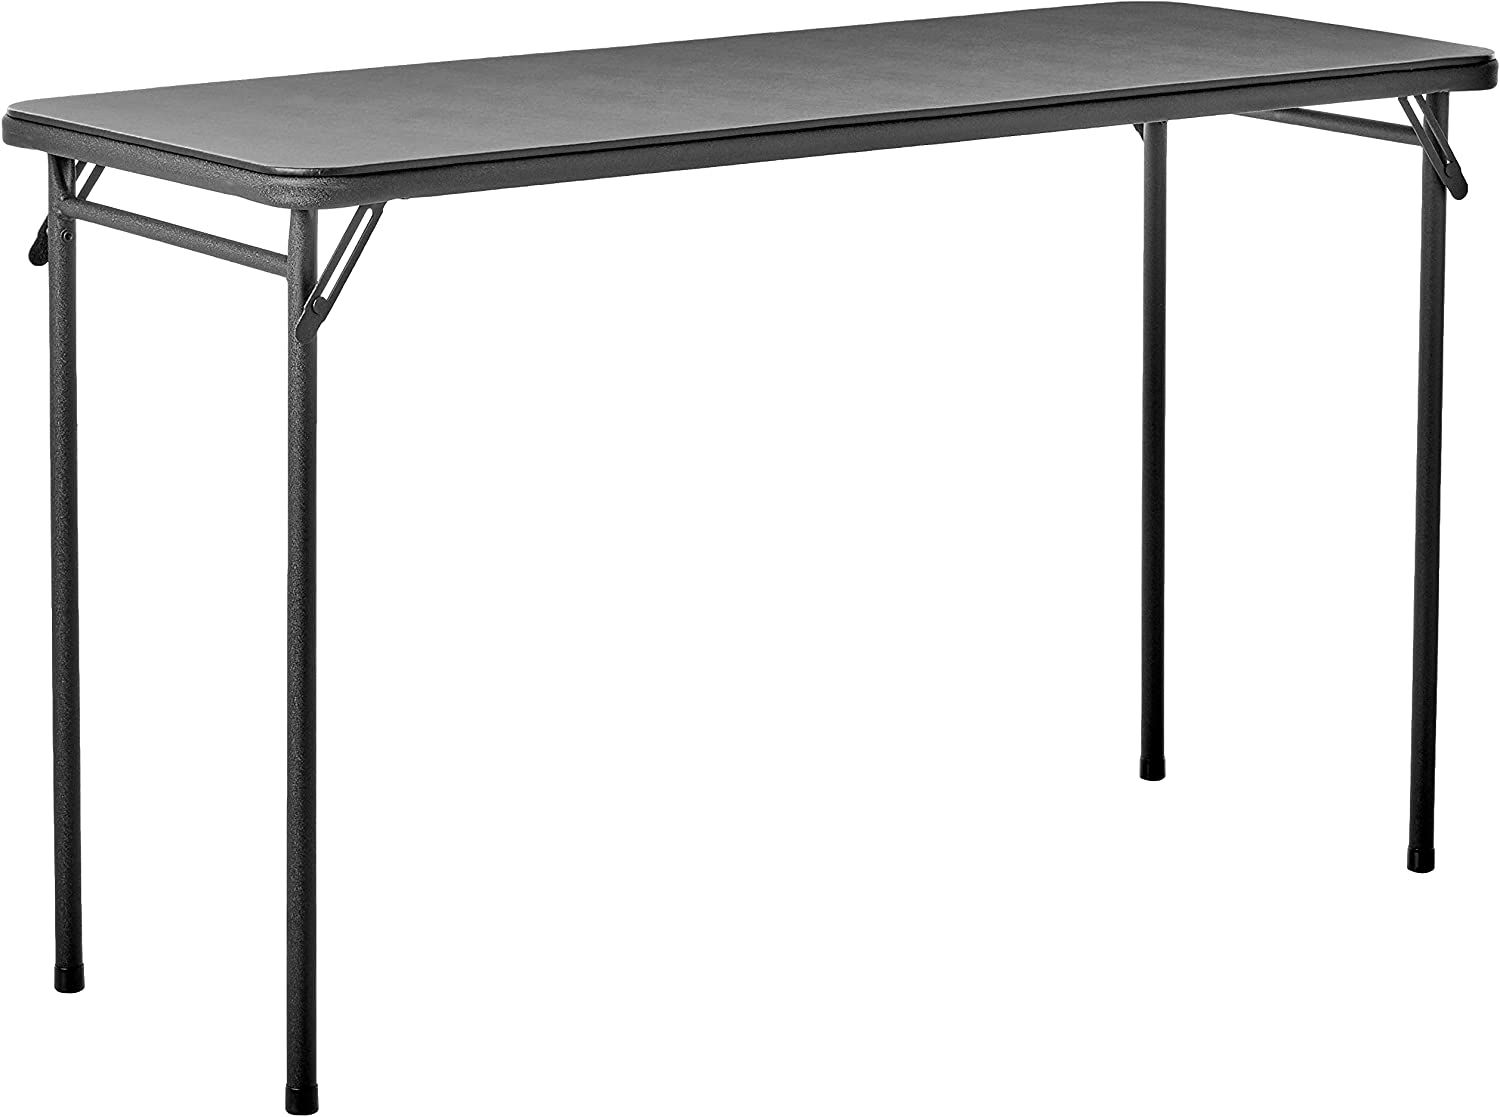 CoscoProducts Vinyl Top Folding Table